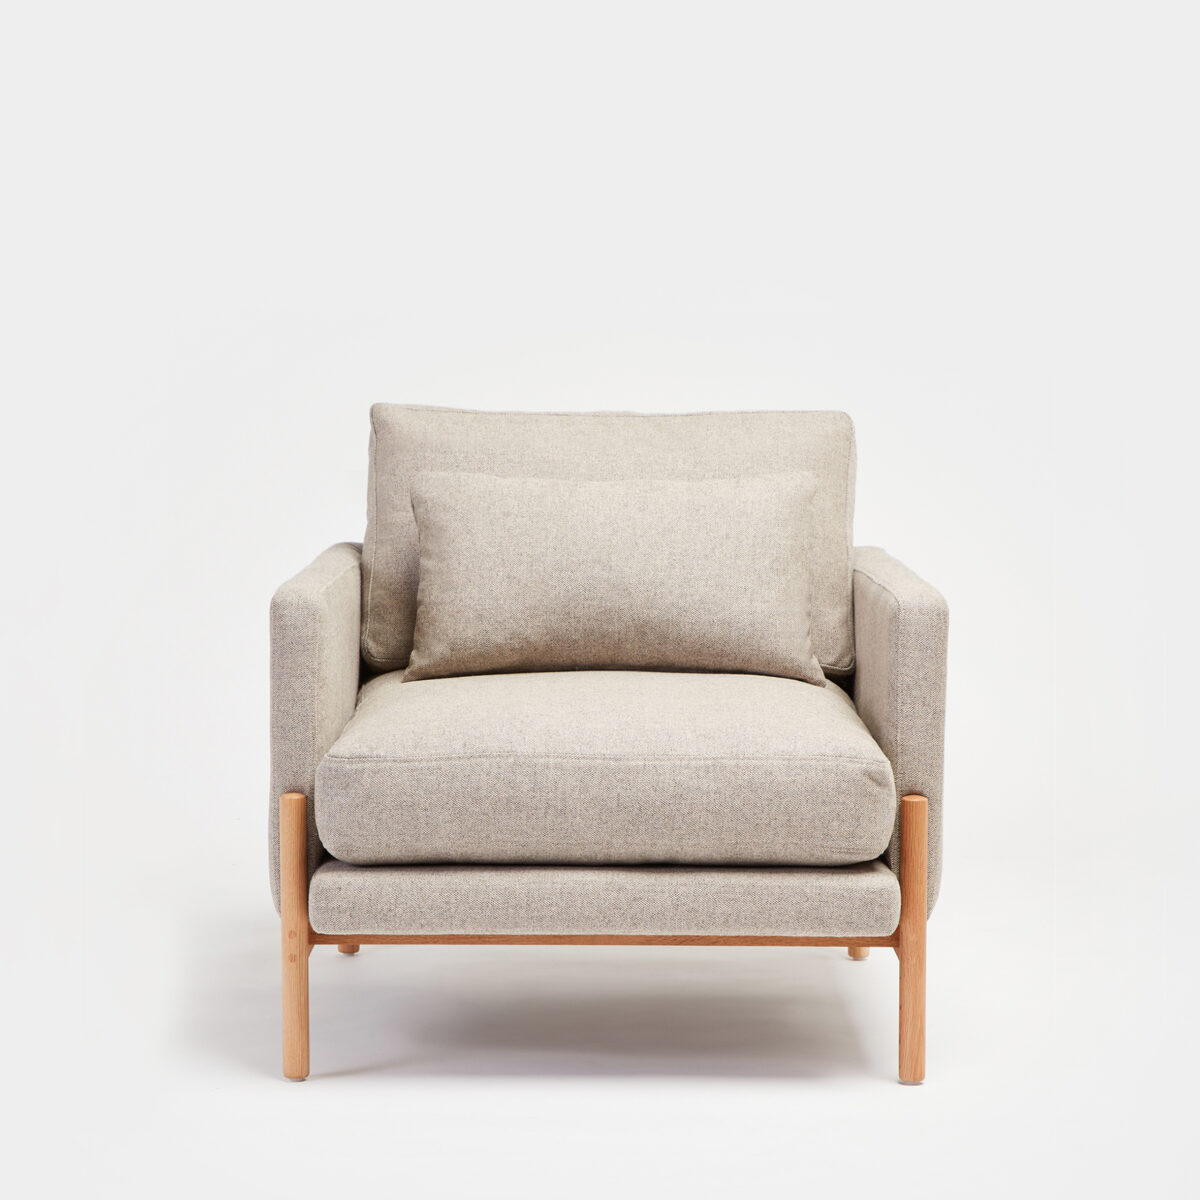 Another Armchair2